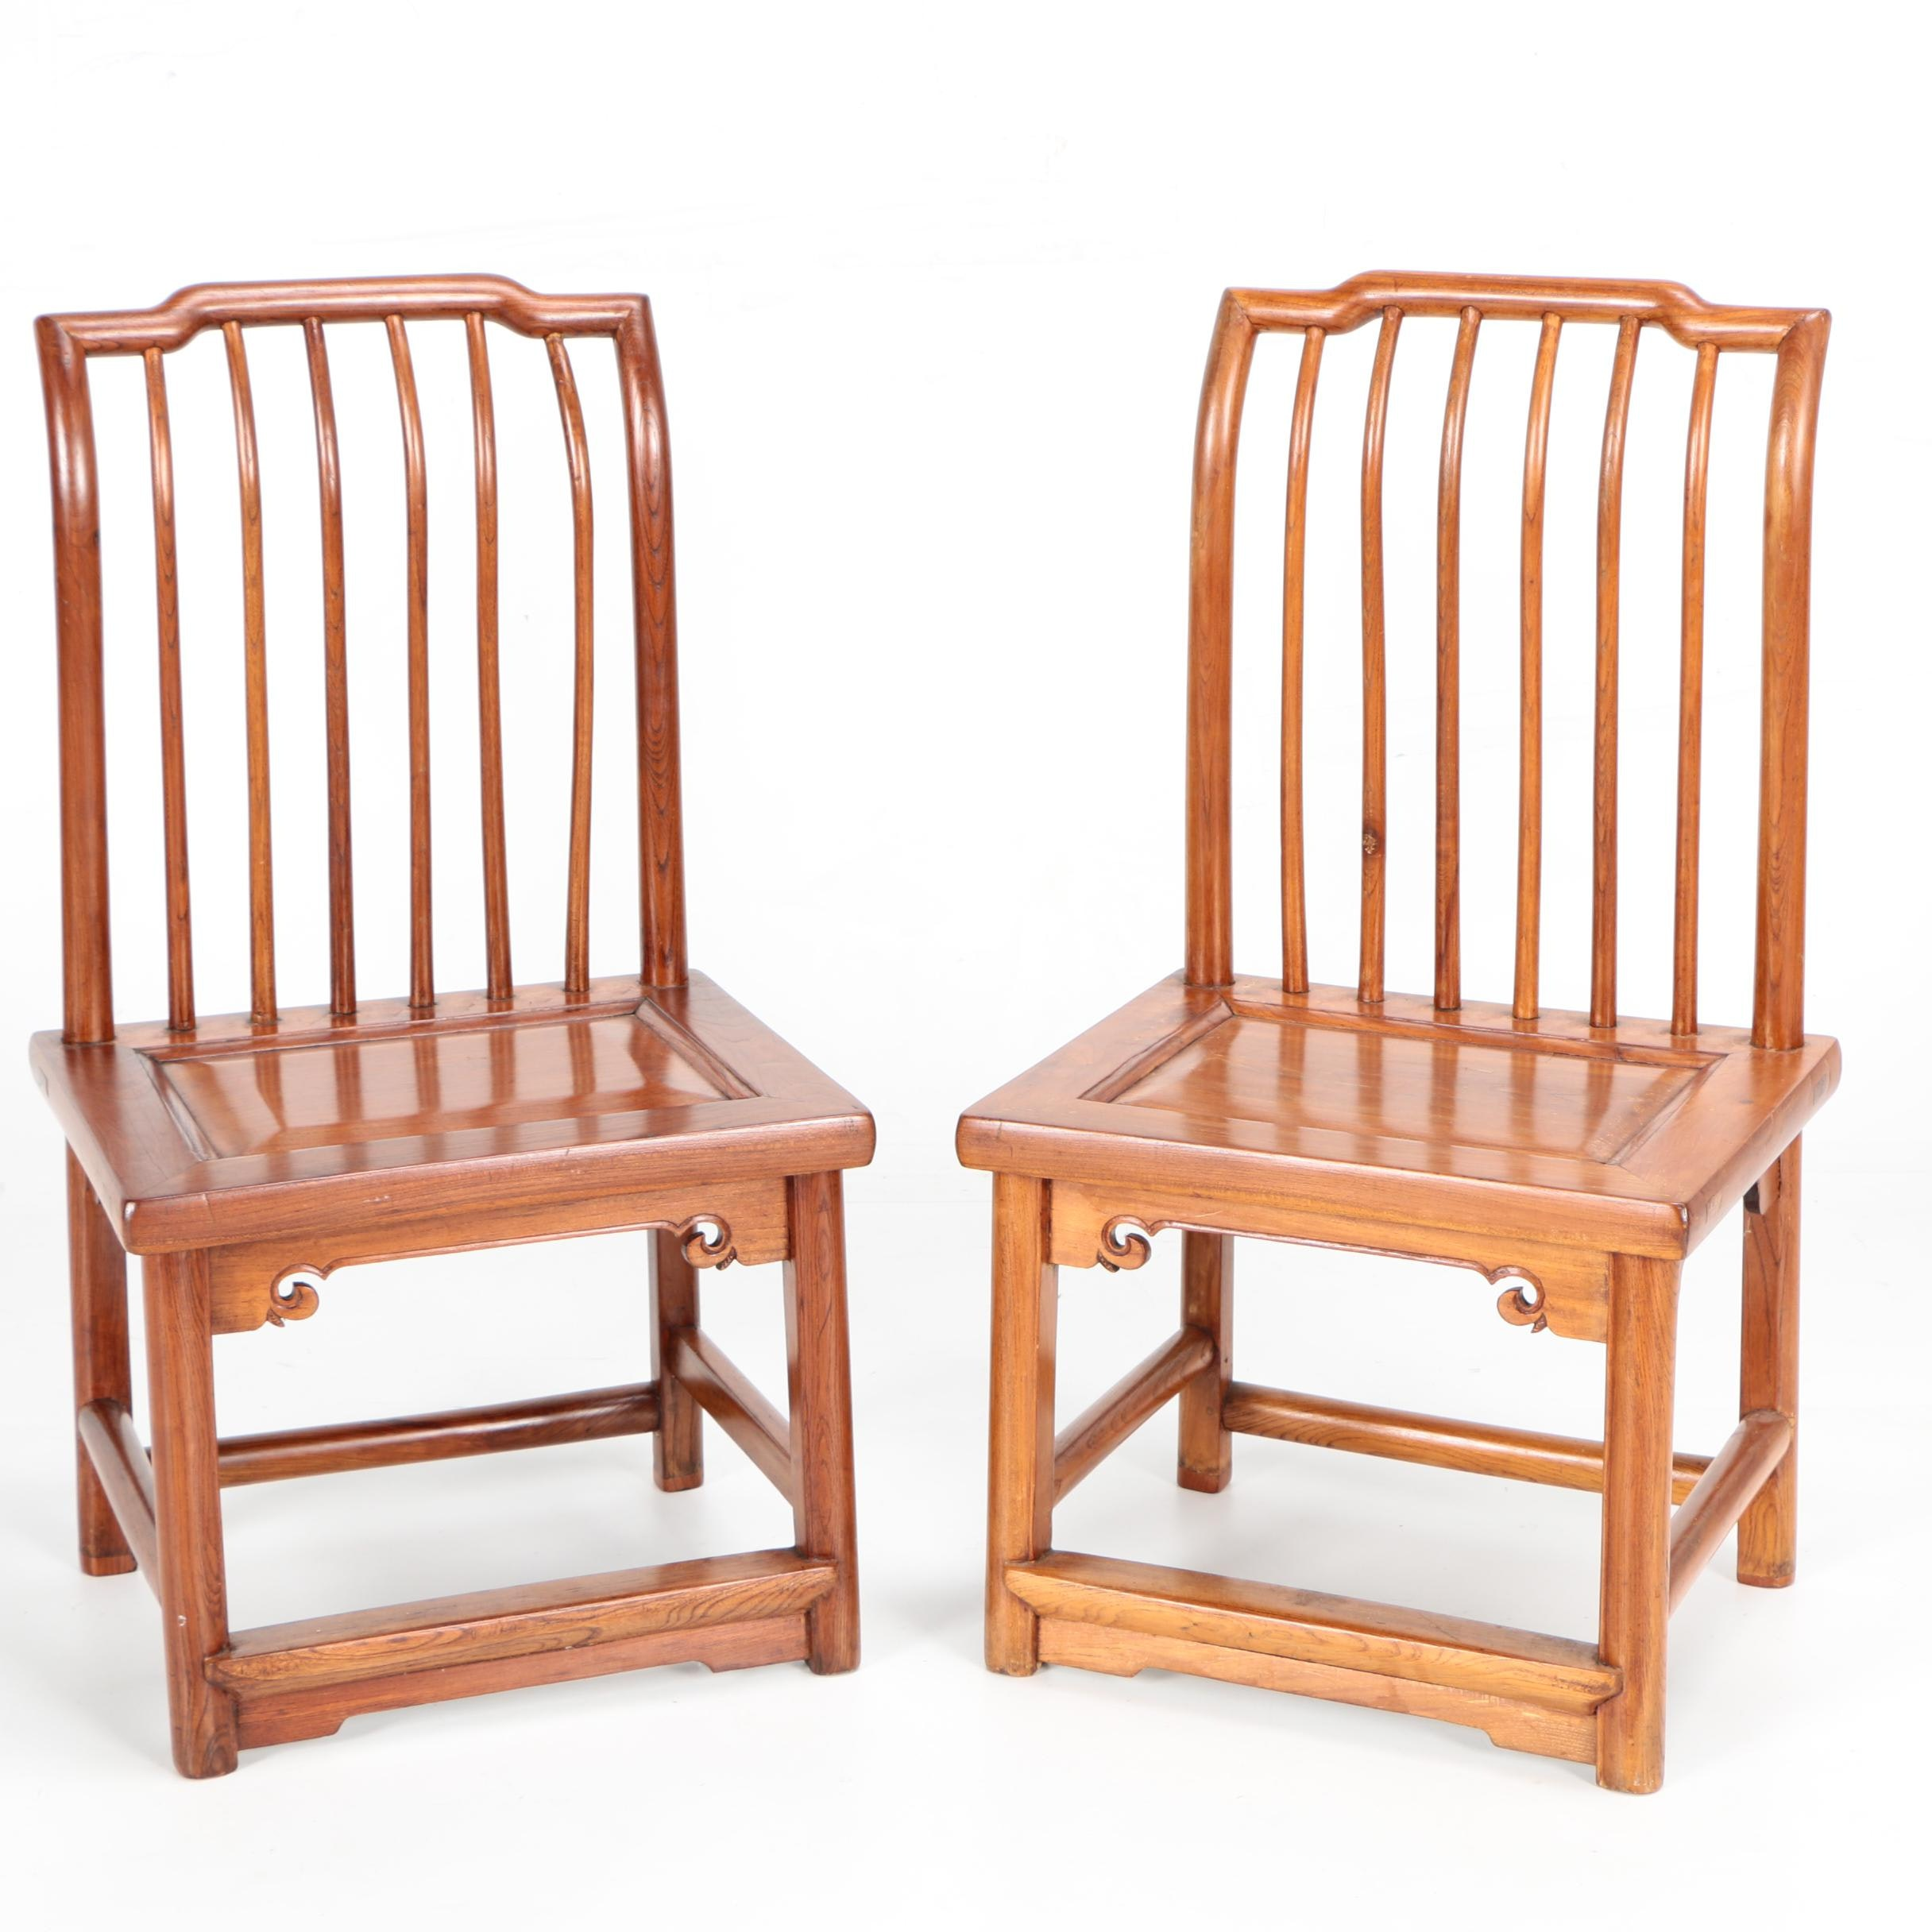 Ming Style Spindle Back Small Chairs